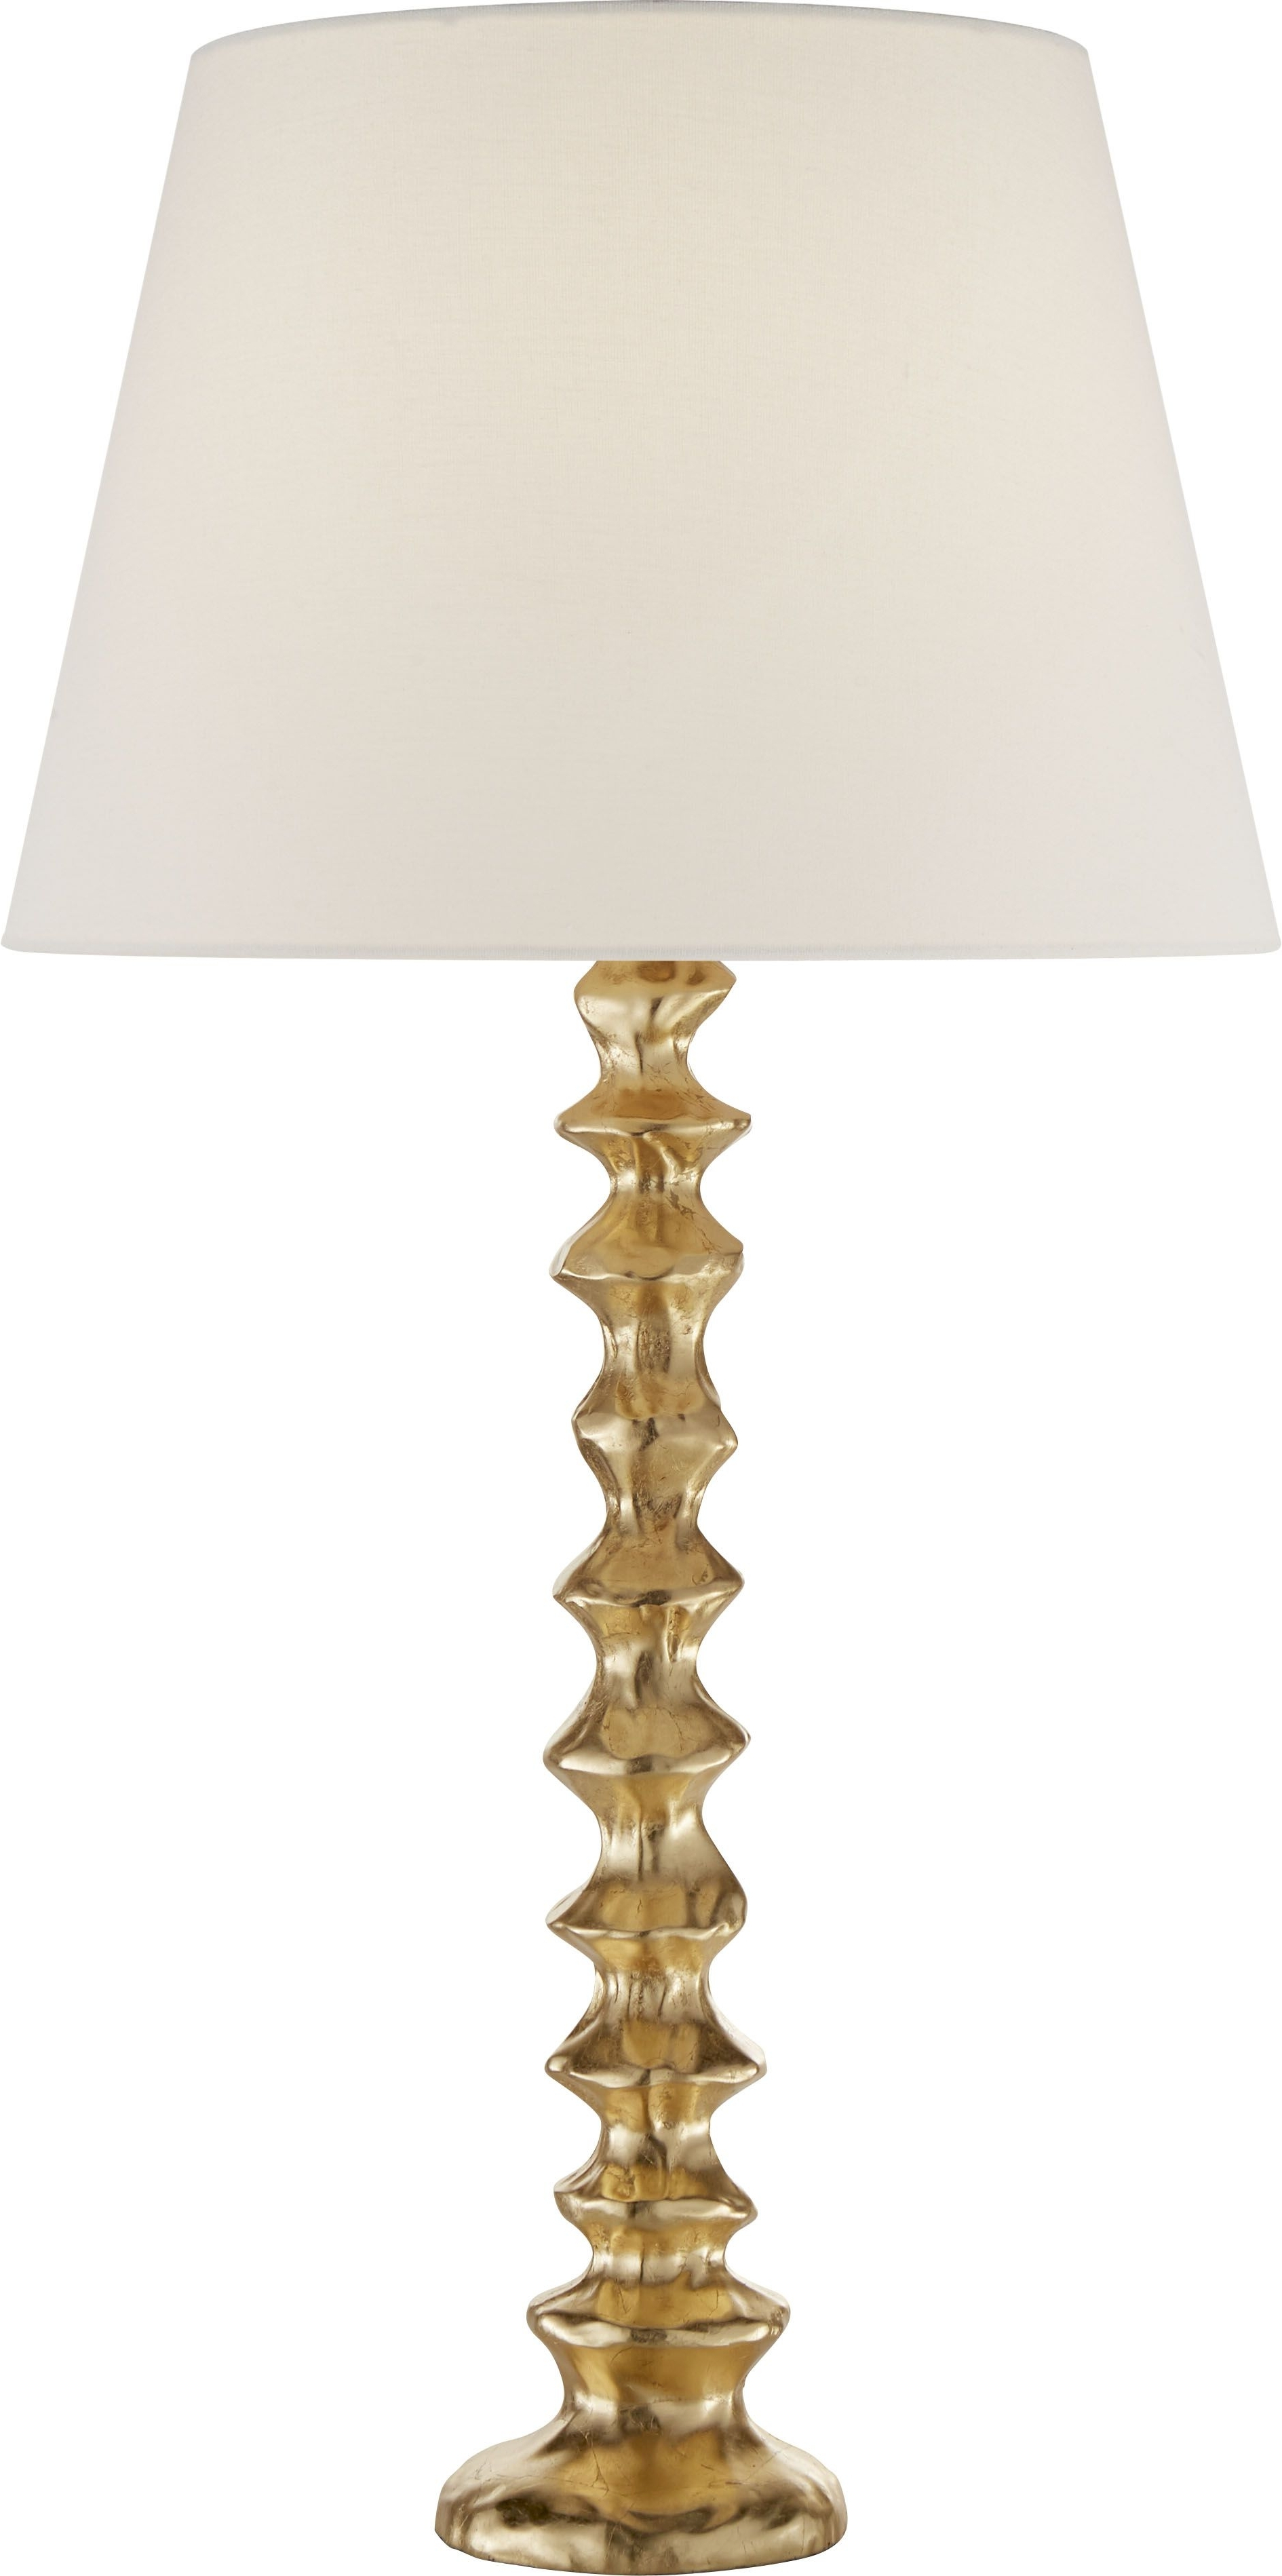 Laura Ashley Table Lamps For Living Room With Most Up To Date Furniture : Living Room Lamp Design Ashley Furniture Table Lamps (View 7 of 15)